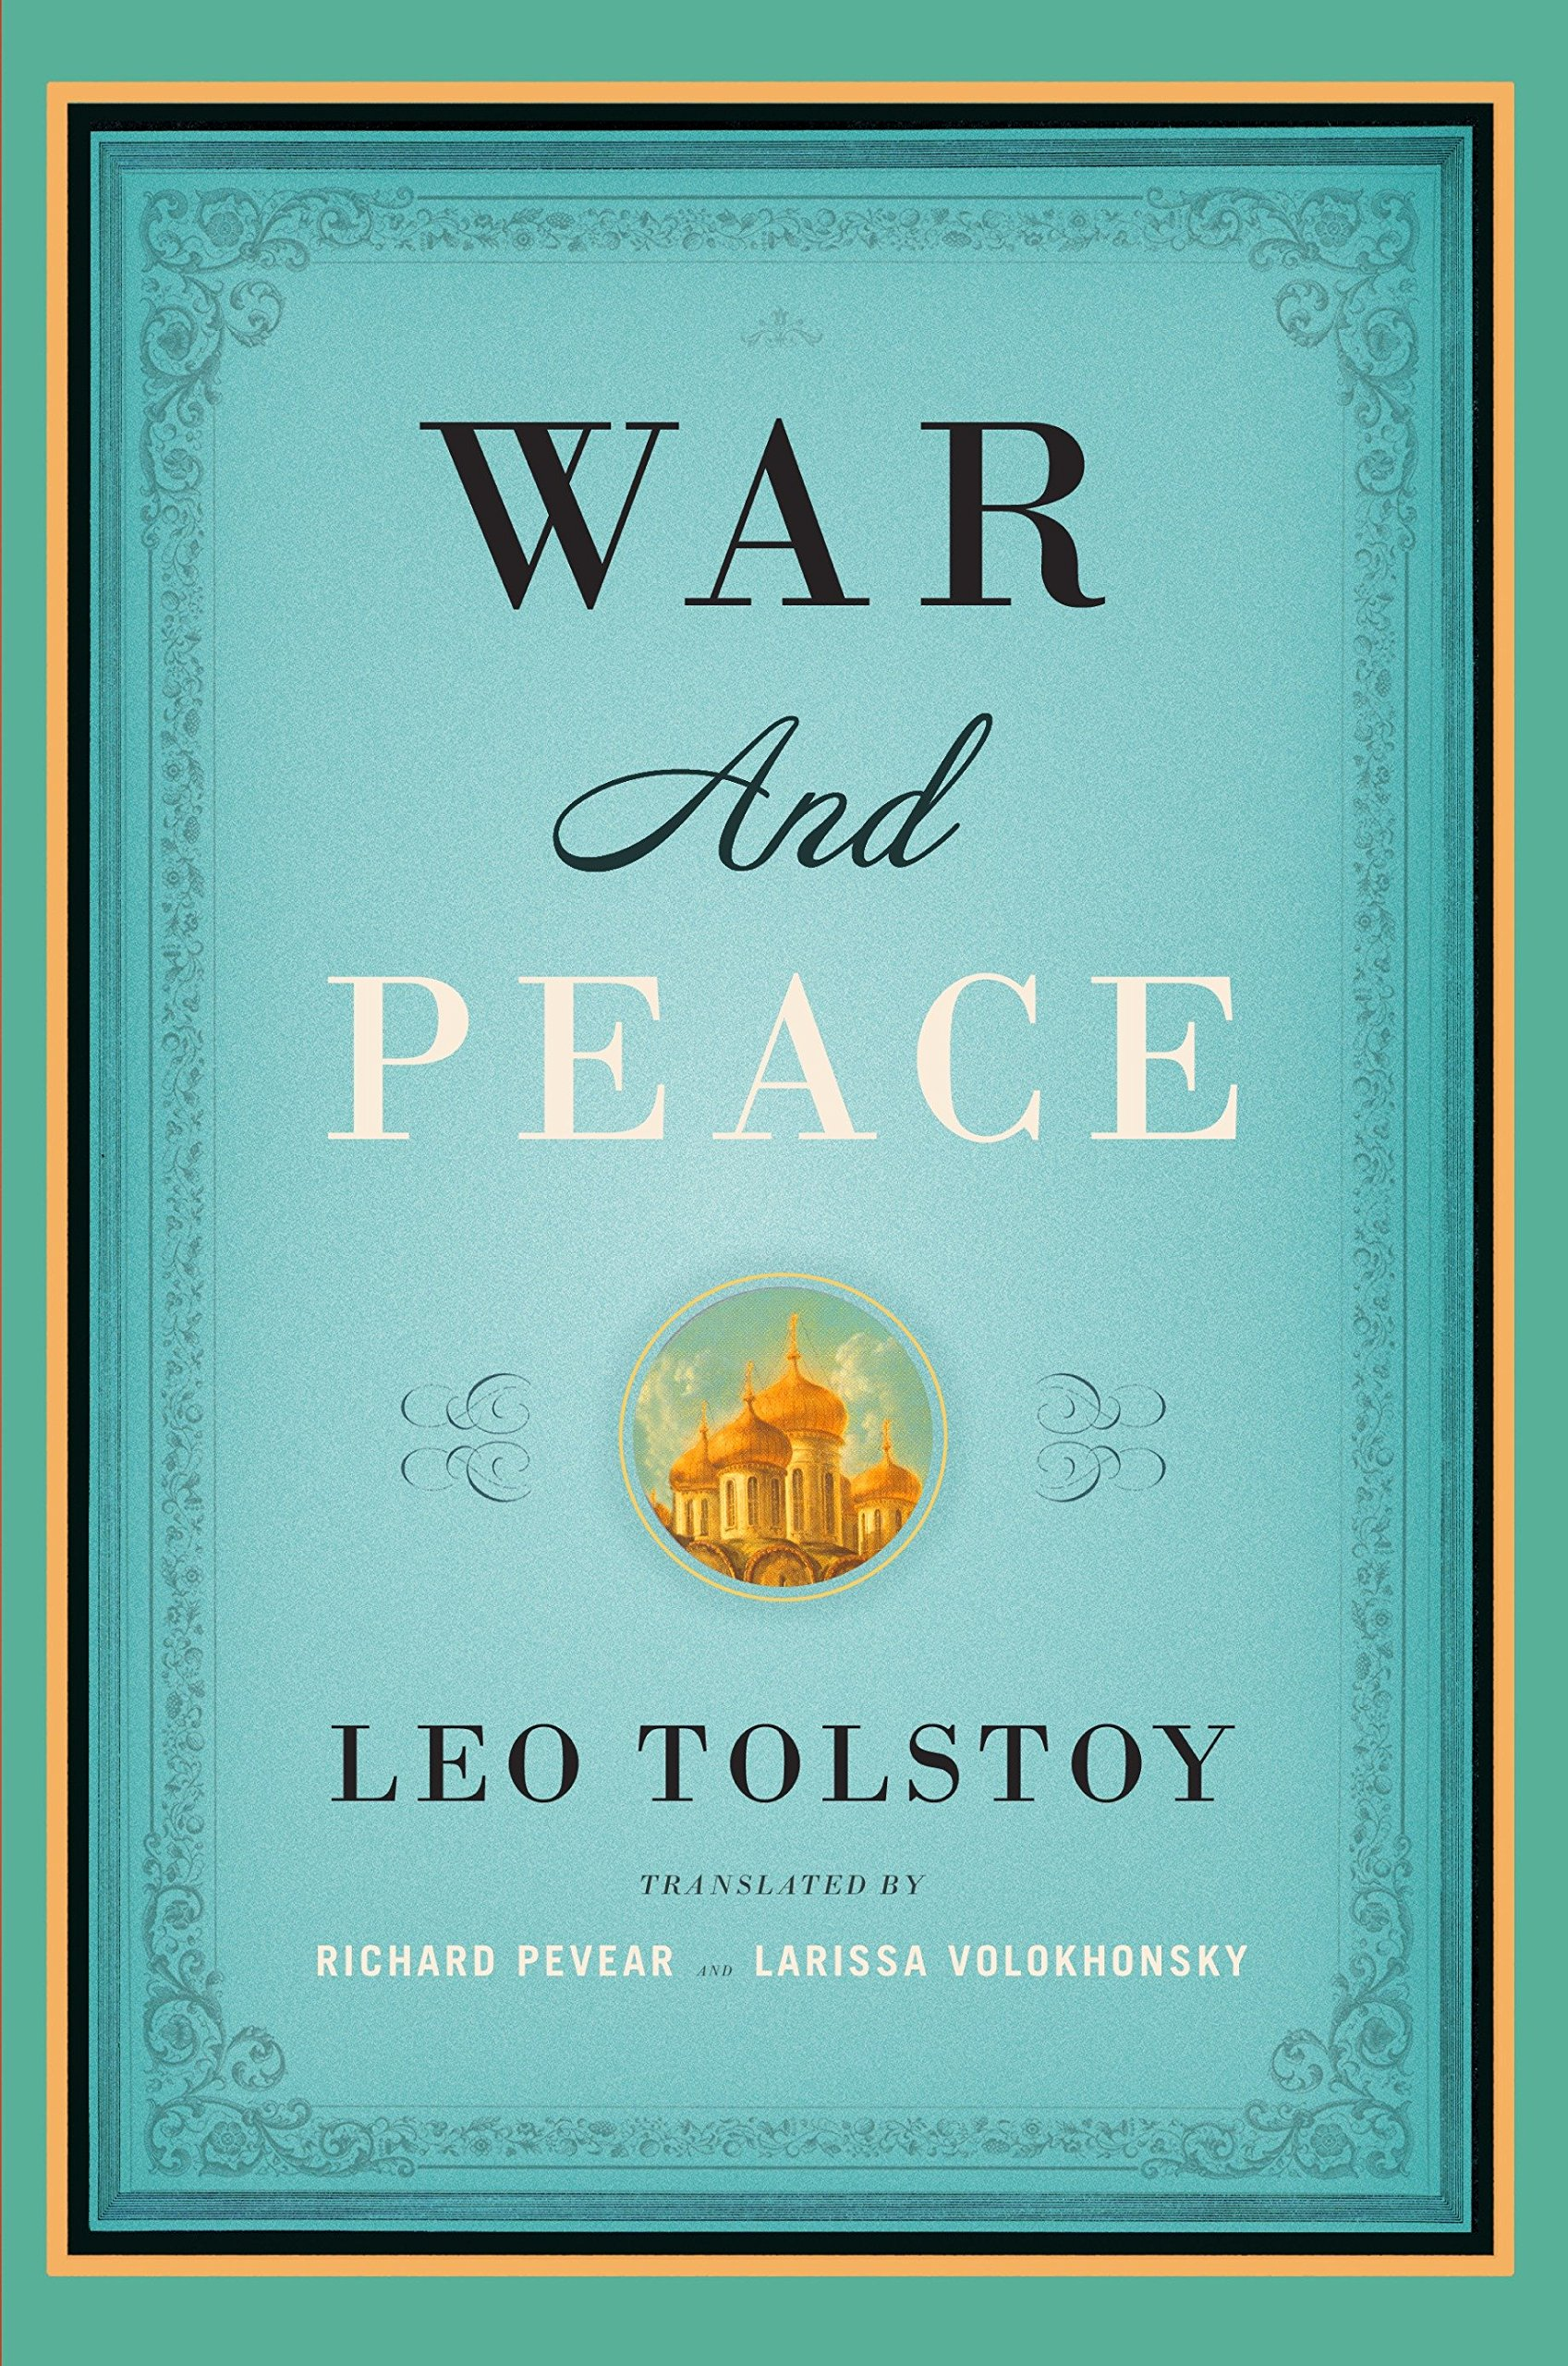 Amazon.com: War and Peace (Vintage Classics) (9781400079988 ...